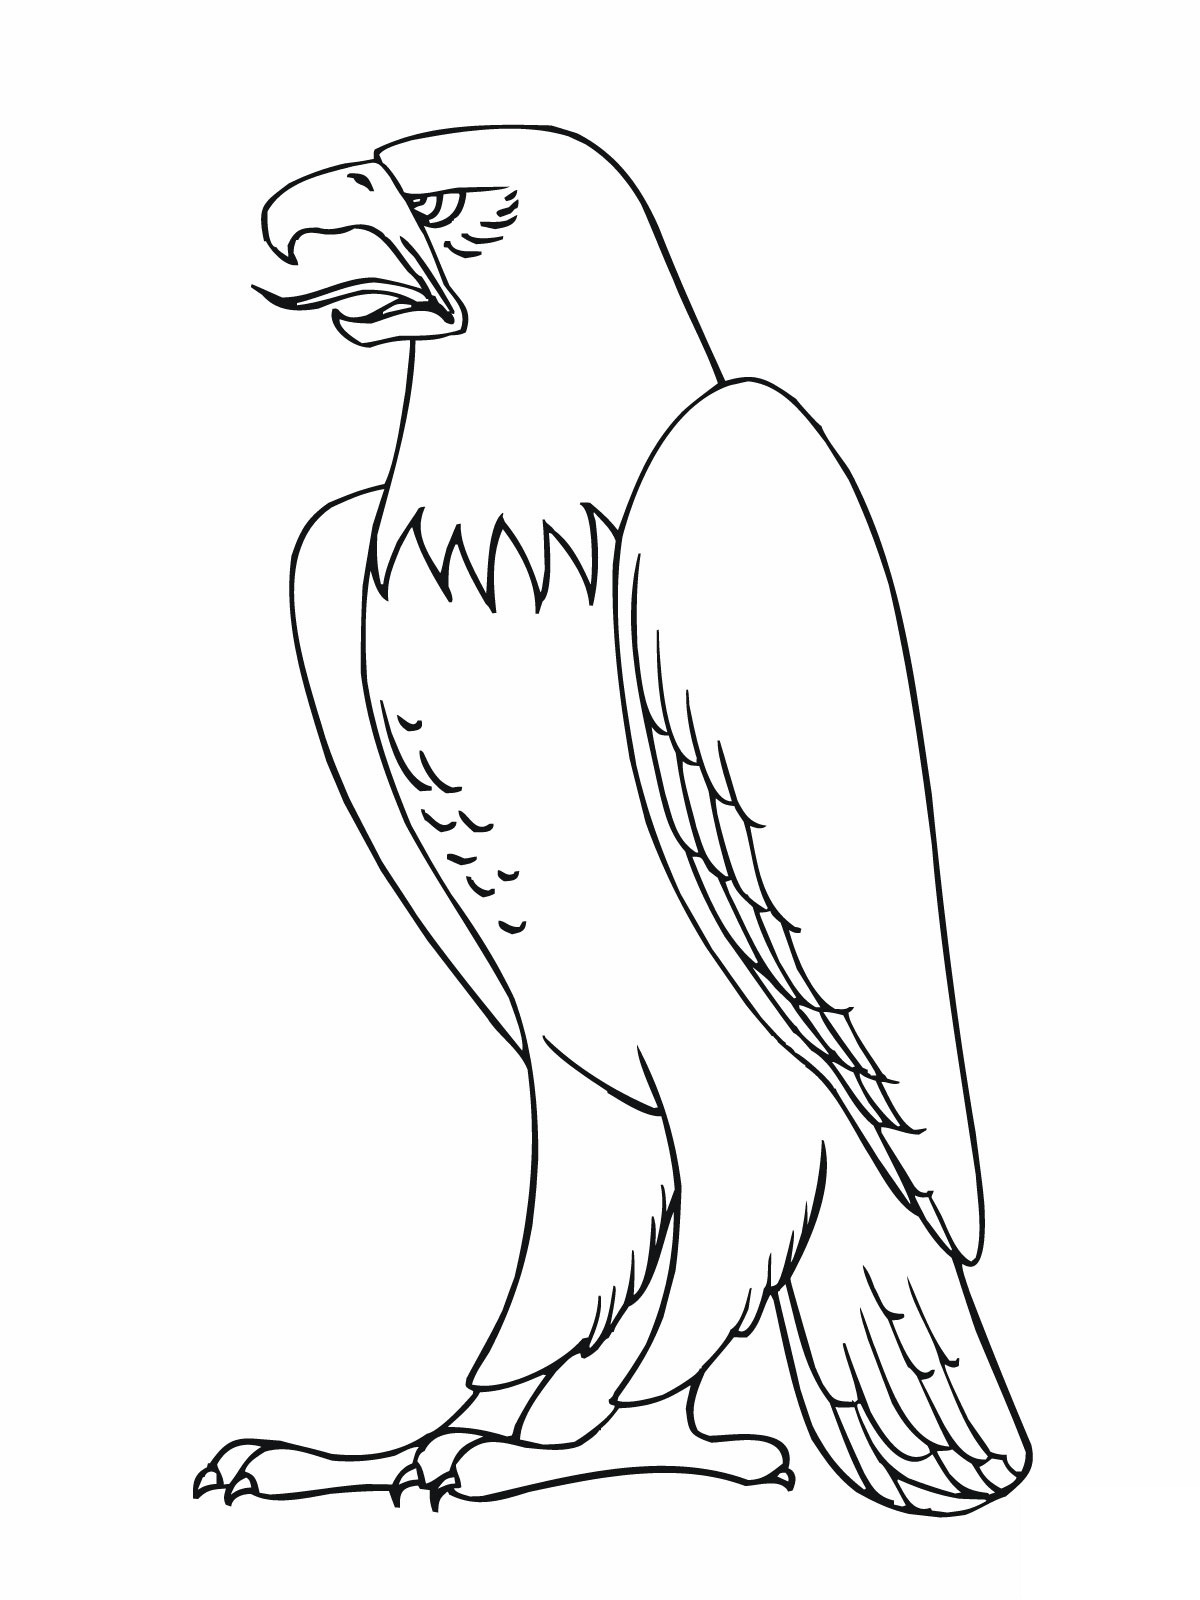 coloring pages of bald eagles - American Bald Eagle Coloring Page